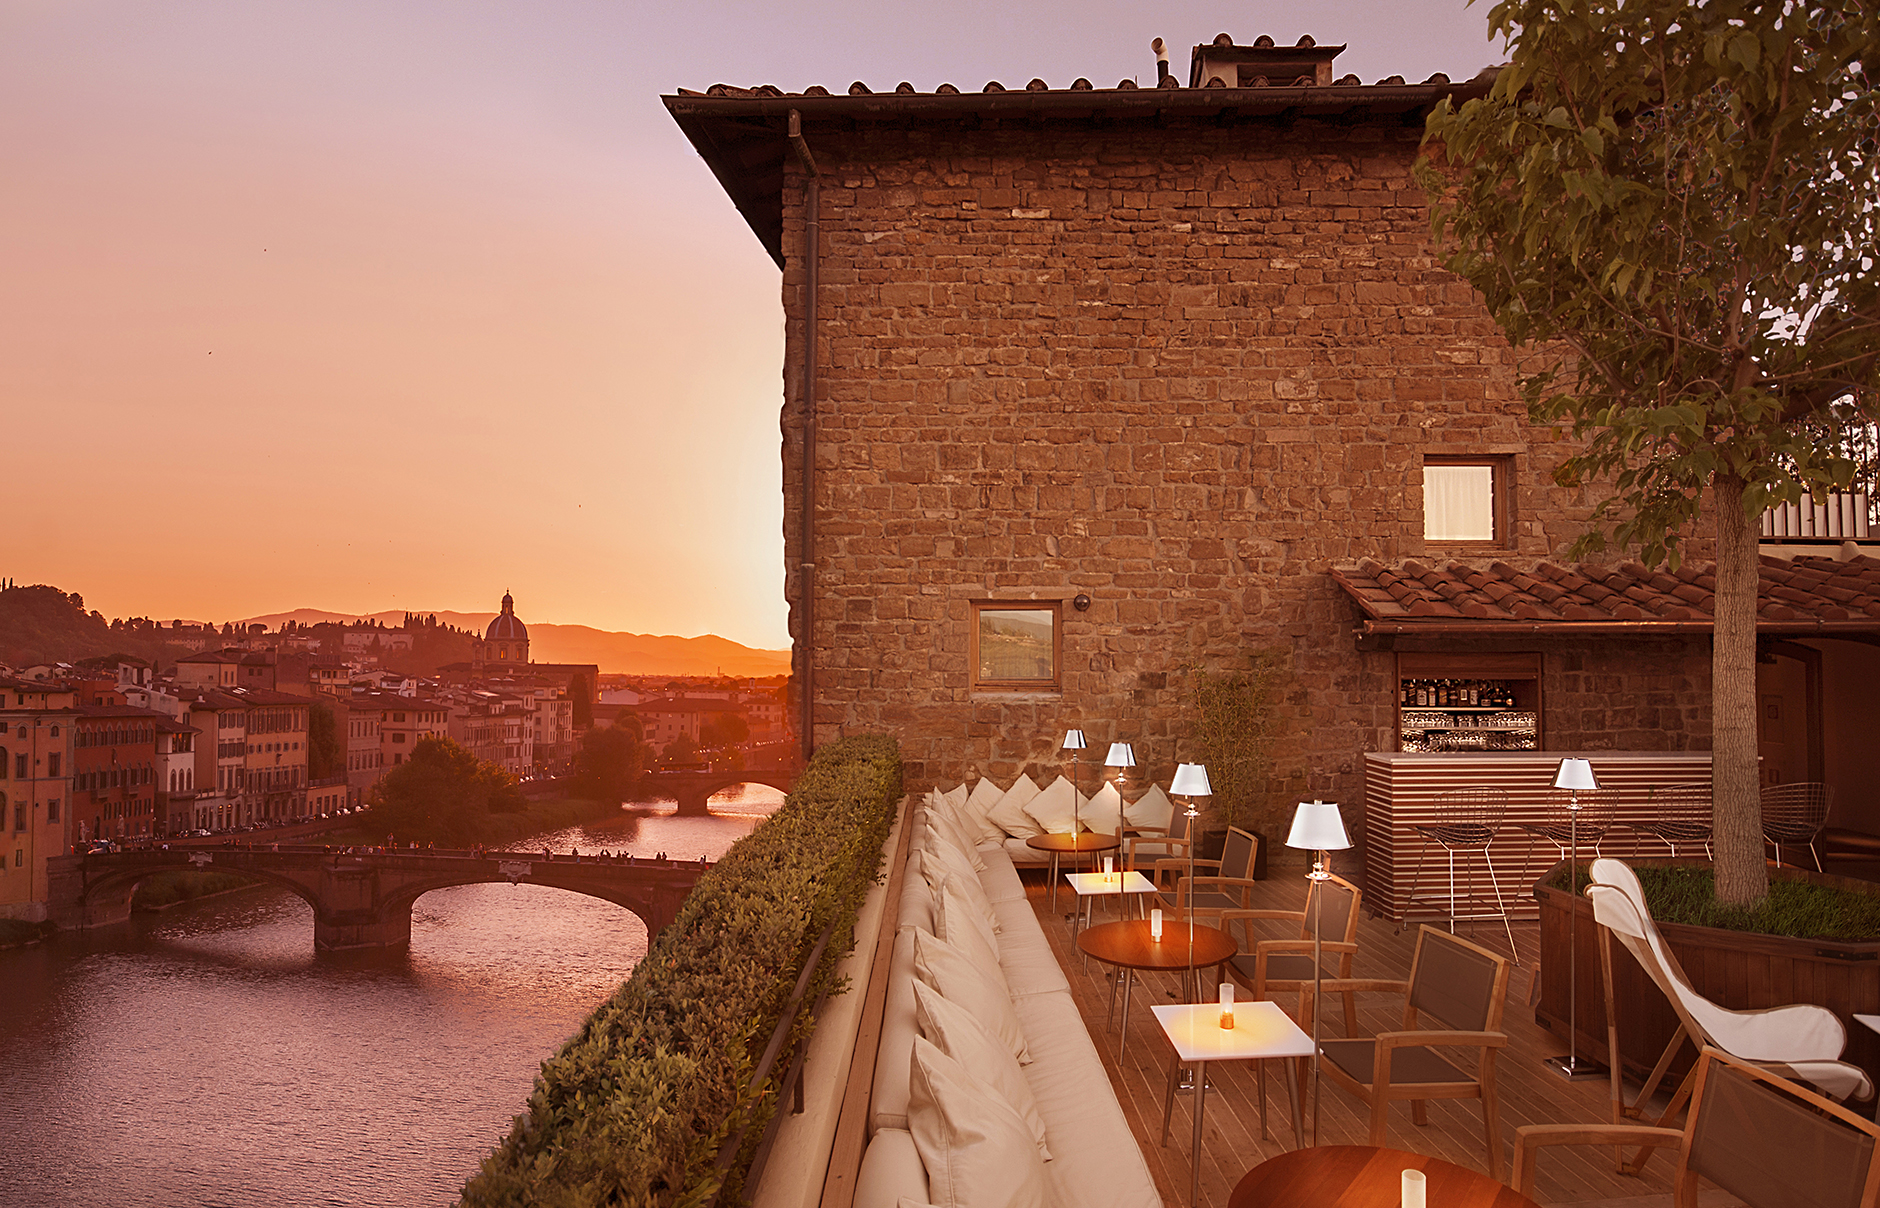 Boutique hotel continentale in florence unveils roof for Design hotel florence italy